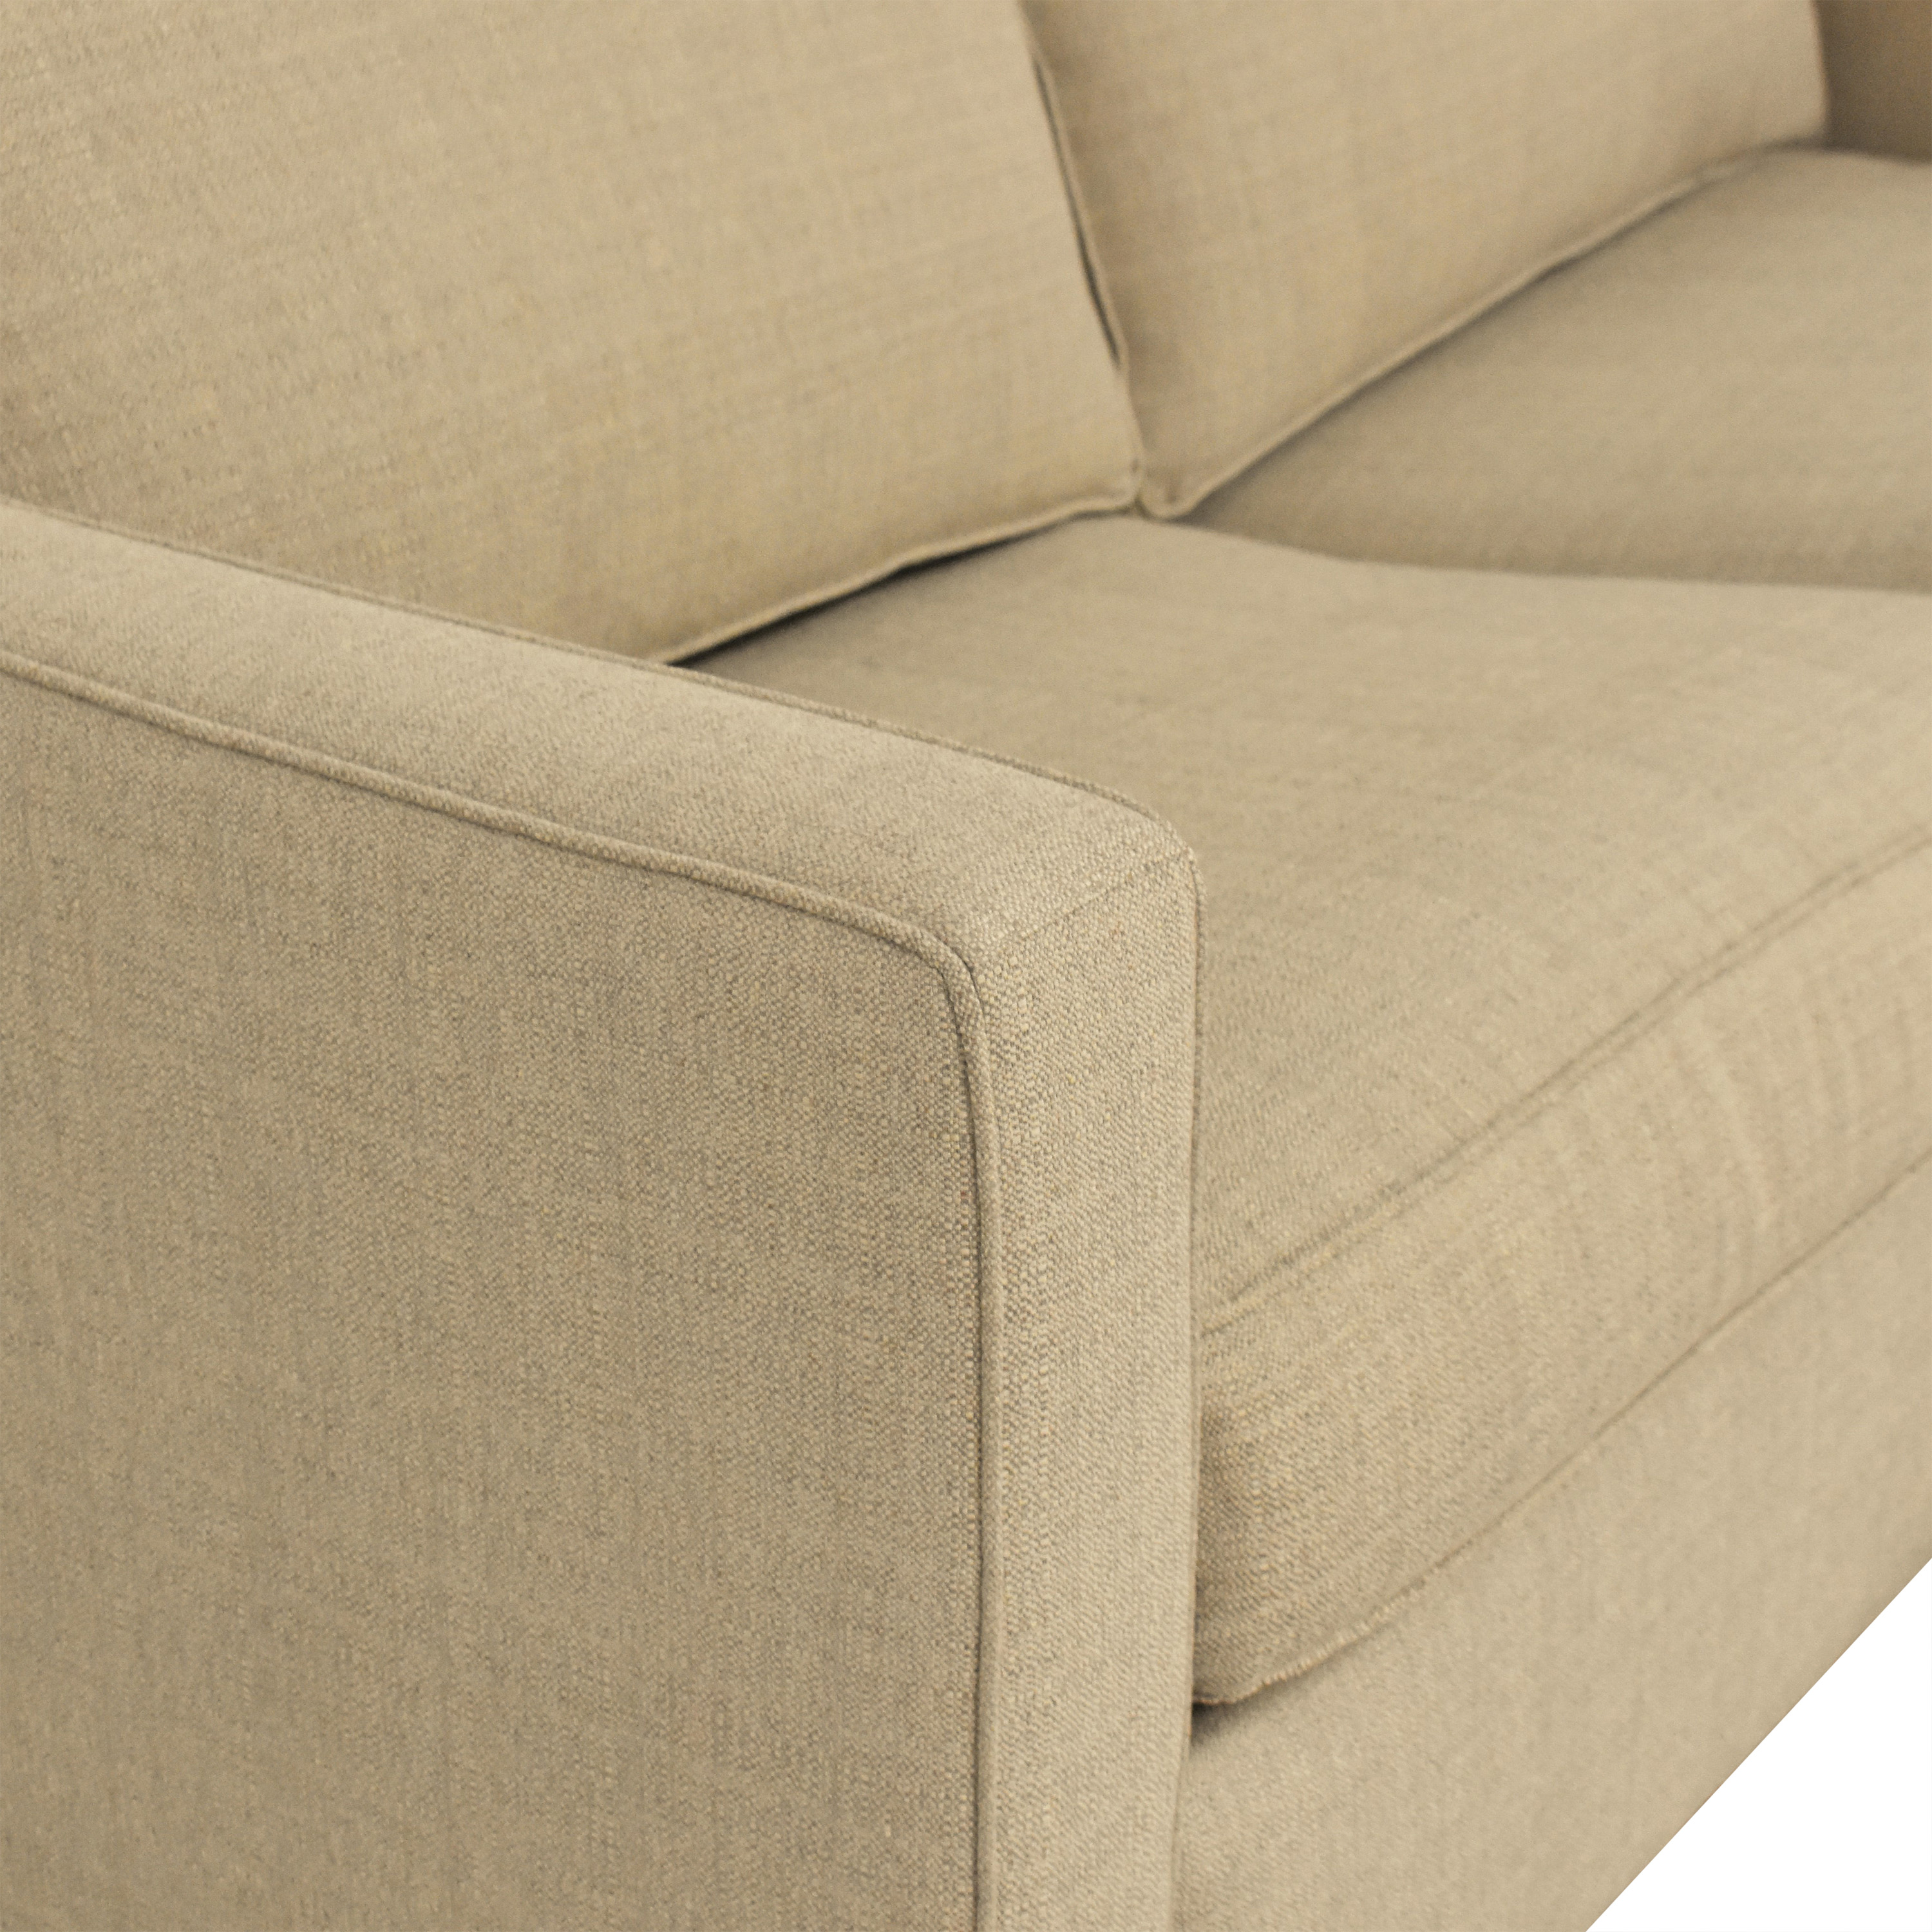 Younger Furniture Younger Furniture Two Cushion Sleeper Sofa coupon